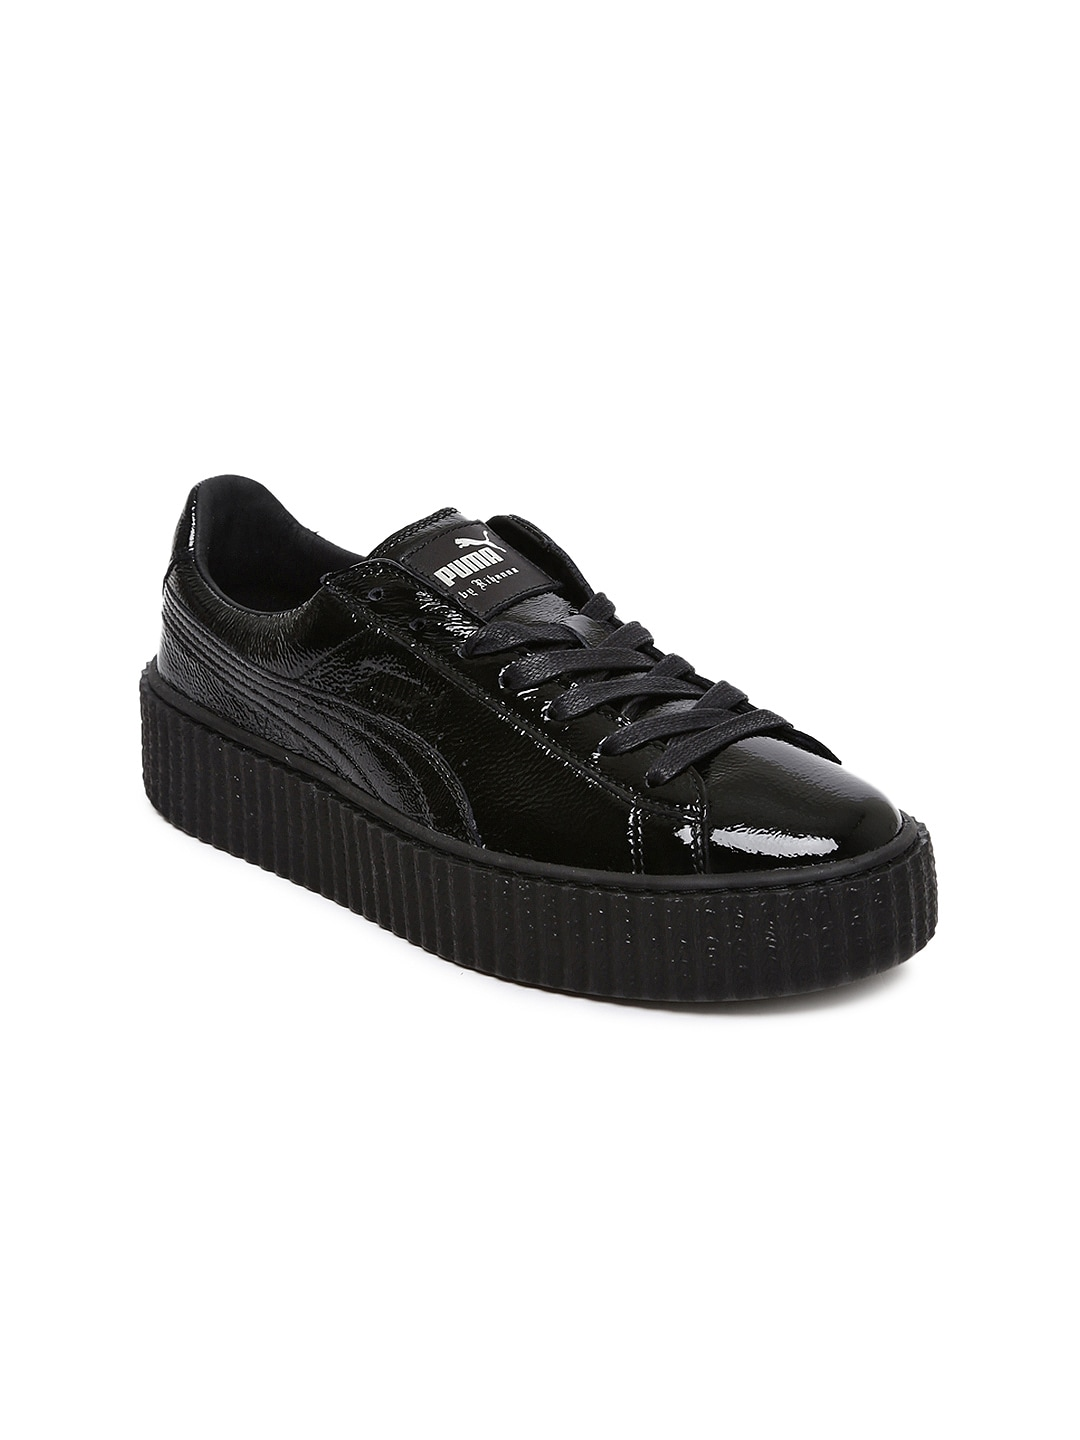 214bcf39e46b8d Patent Leather Casual Shoes - Buy Patent Leather Casual Shoes online in  India